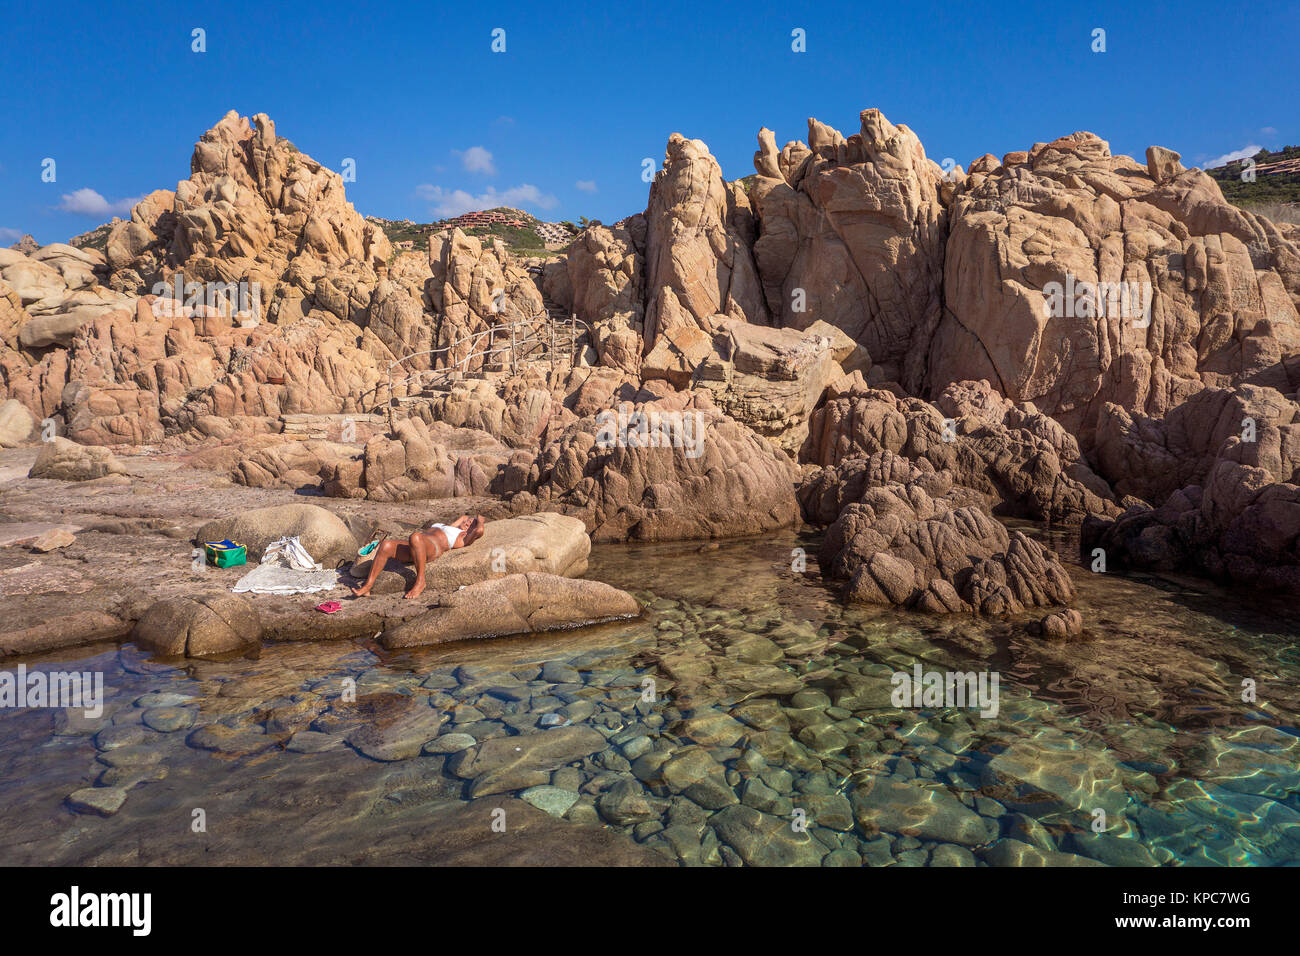 Woman takes a sunbath at the Idyllic rocky coast of Costa Paradiso, Porphyry rocks, Sardinia, Italy, Mediterranean - Stock Image